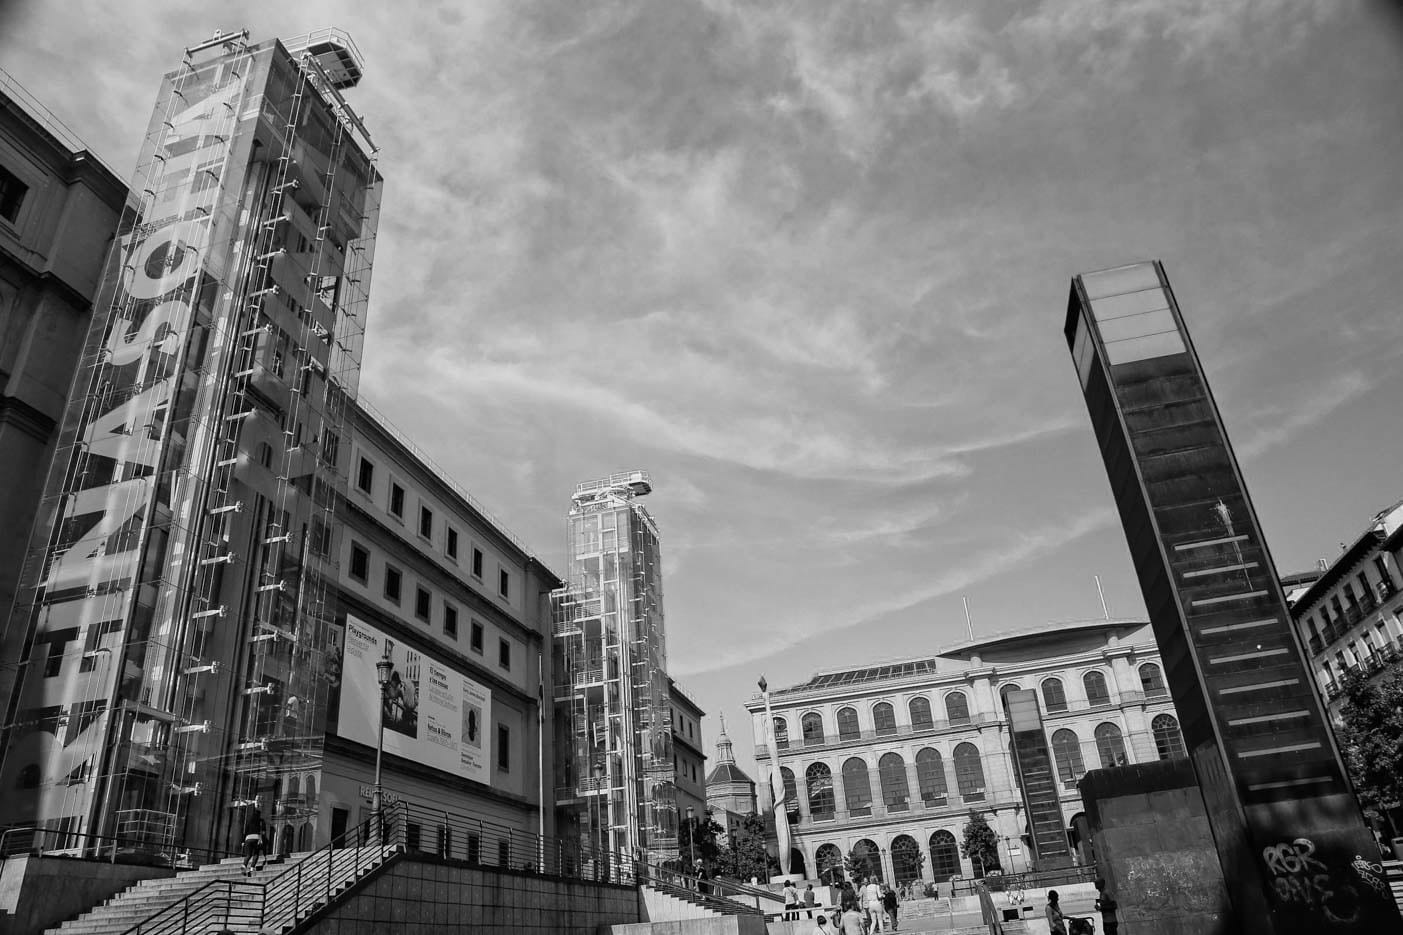 Reina Sofia museum of modern art in Madrid